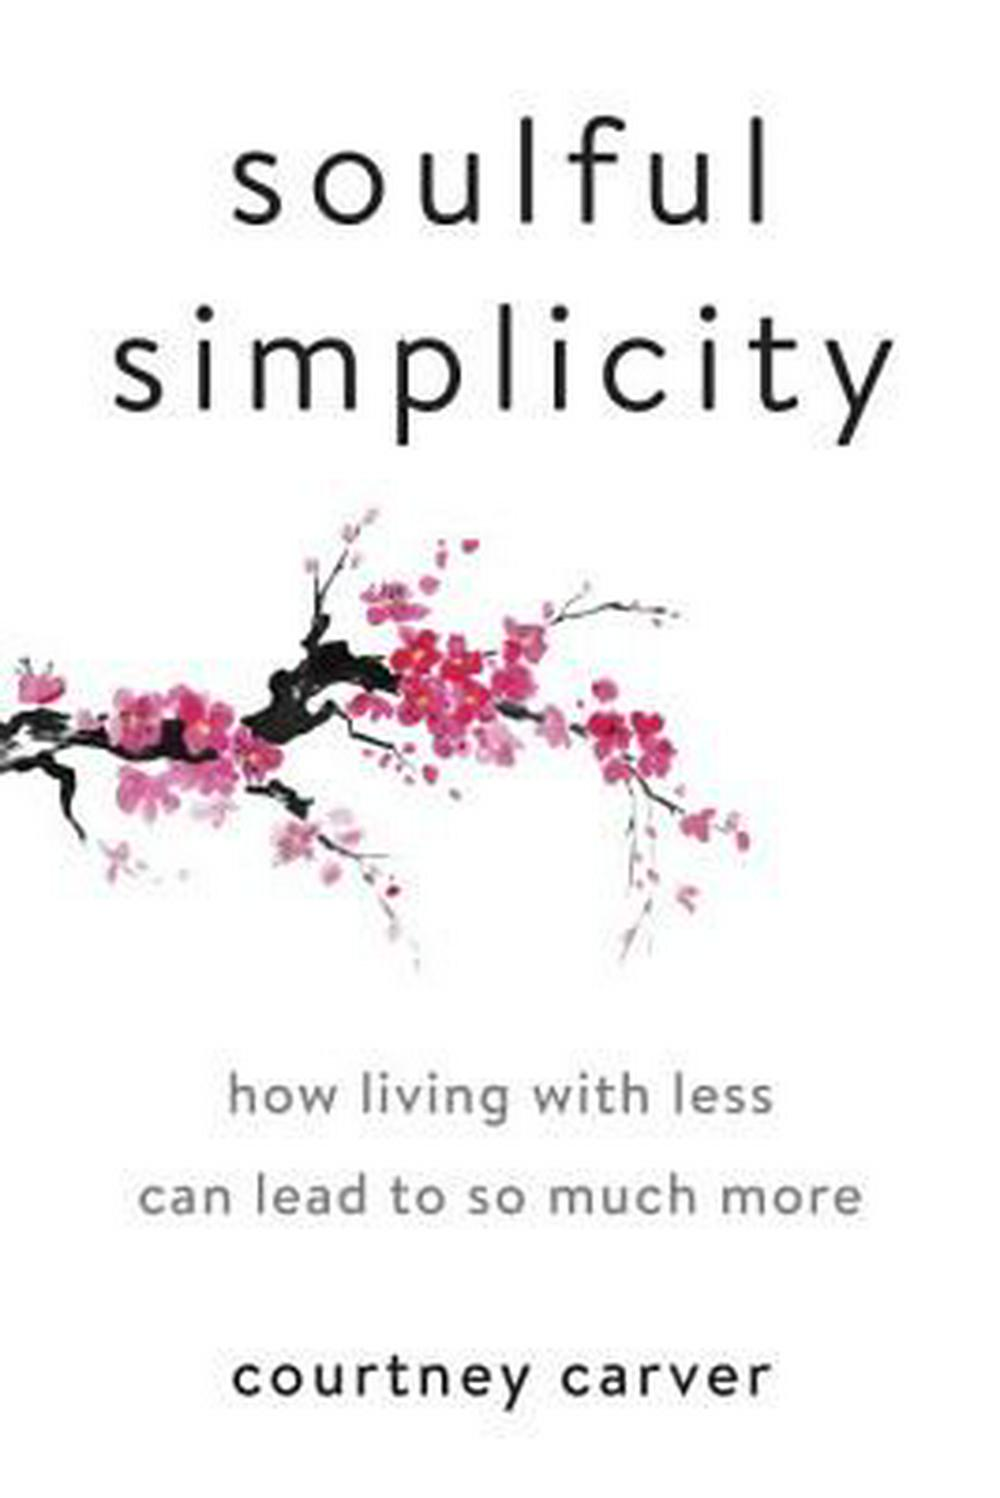 Soulful Simplicity by Courtney Carver, ISBN: 9780143130680